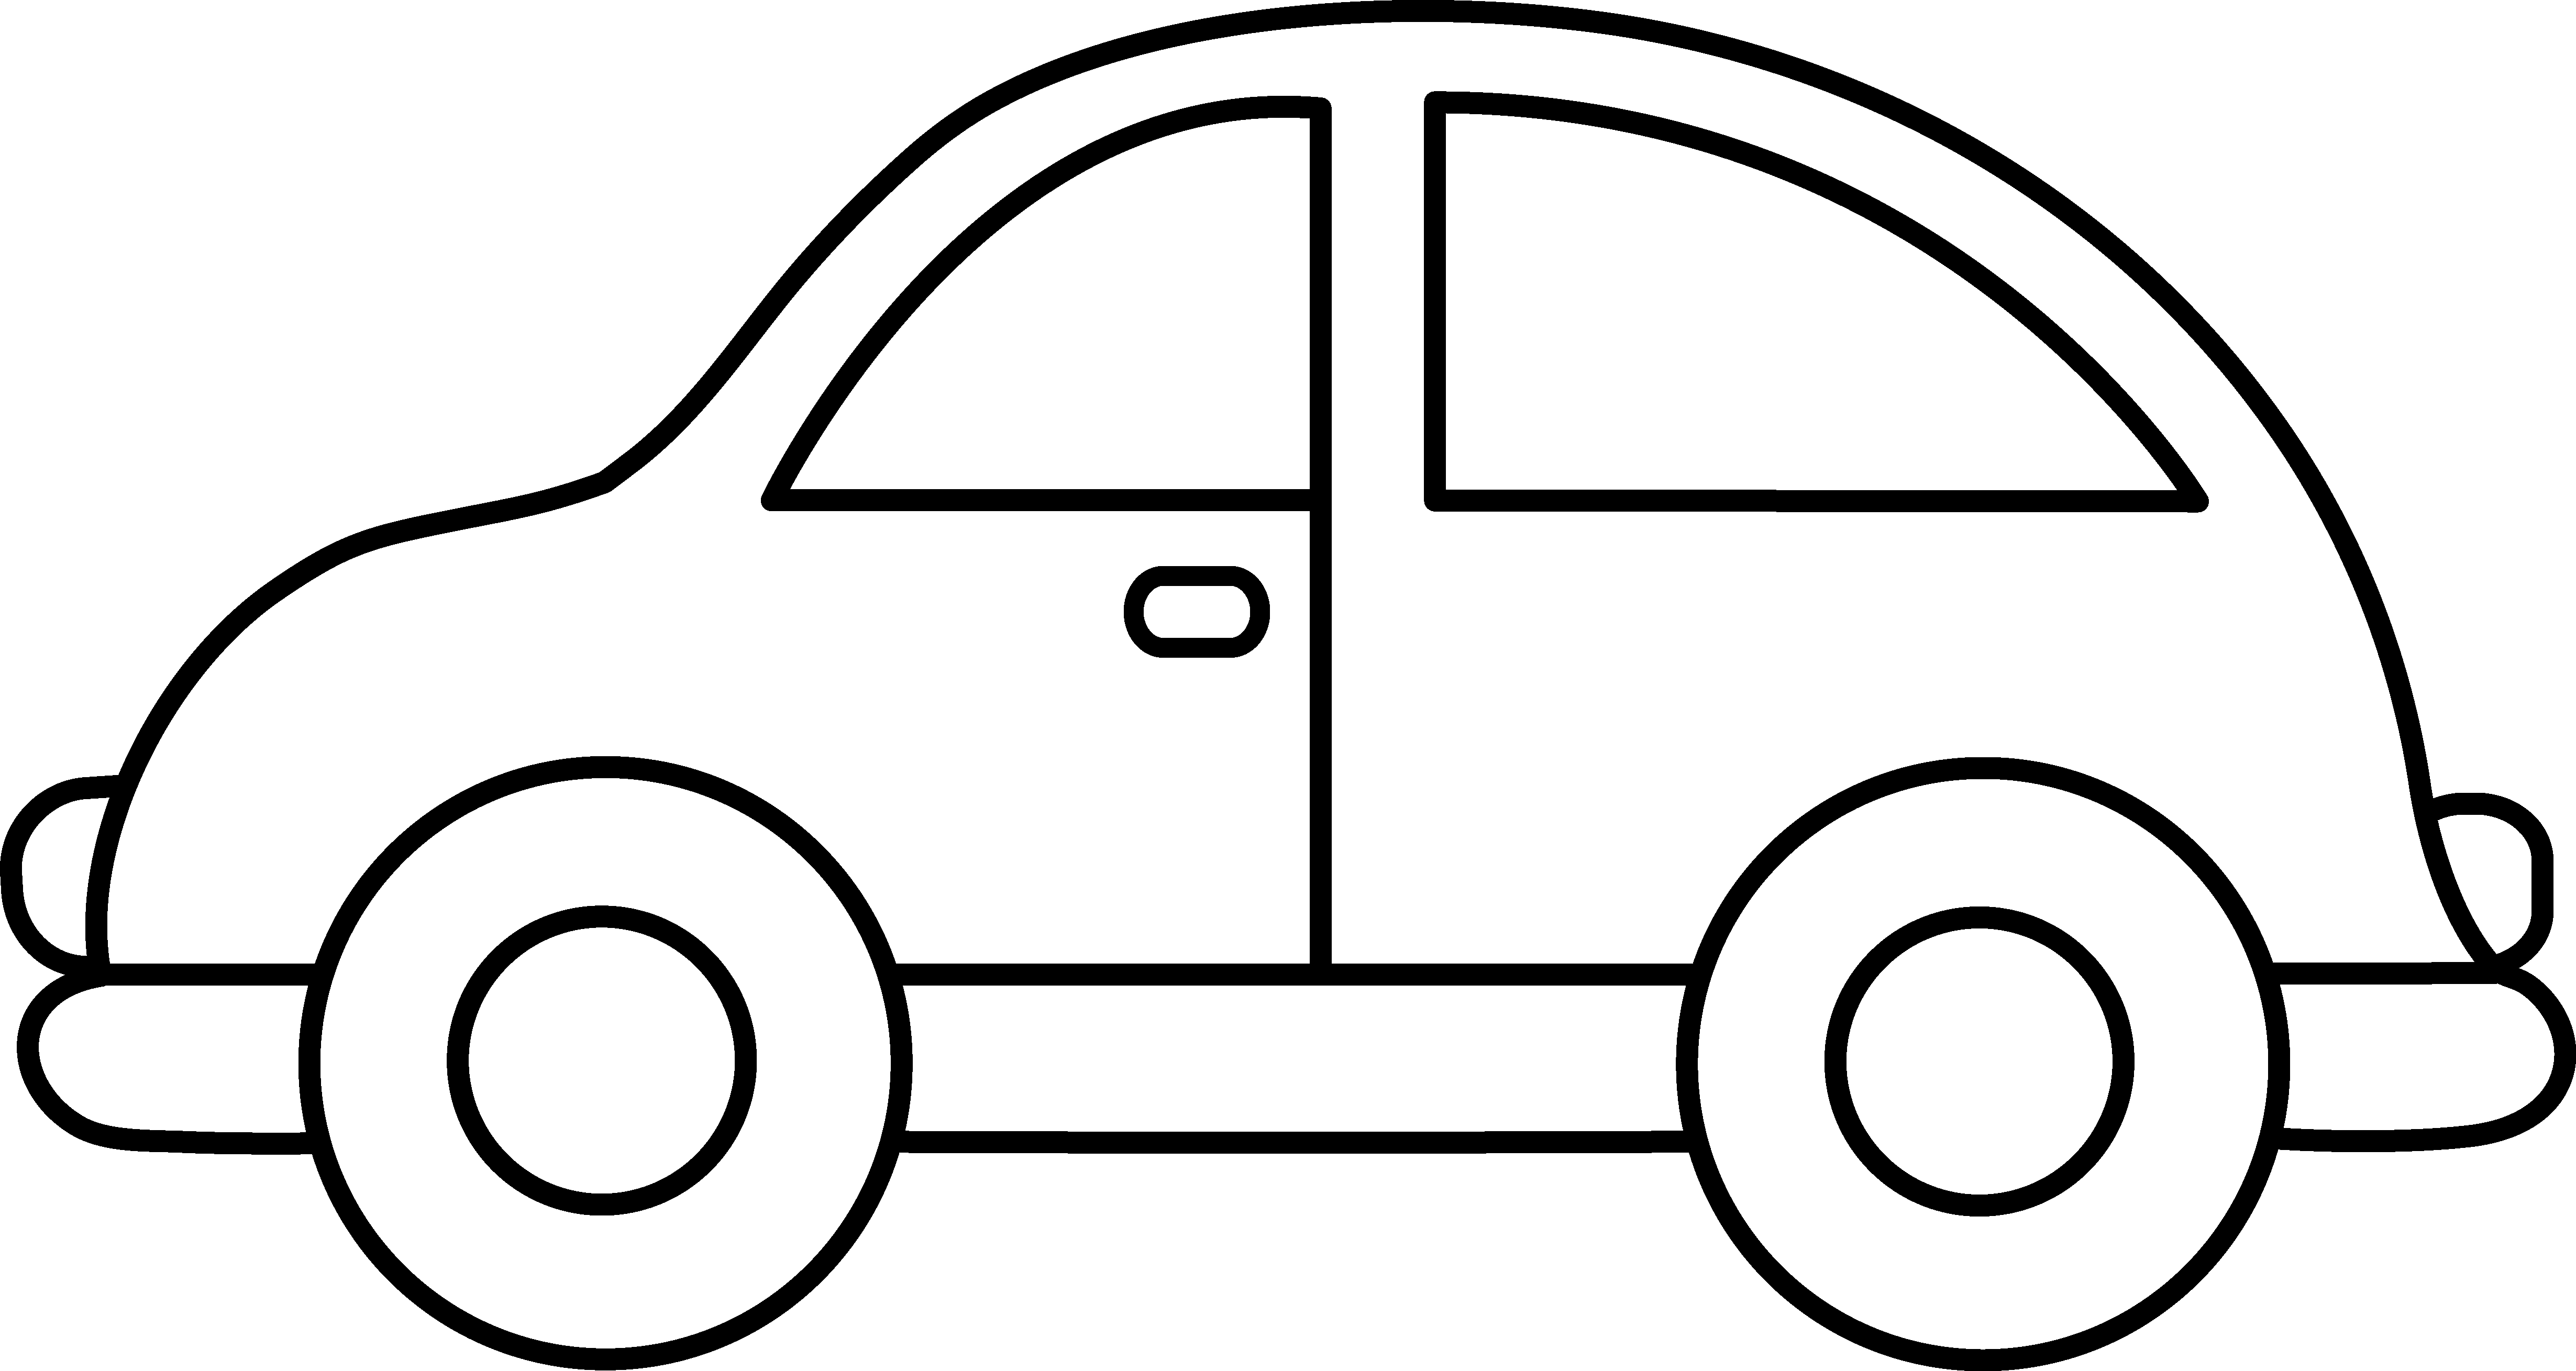 car silhouette outline at getdrawings com free for personal use rh getdrawings com  car outline clip art free